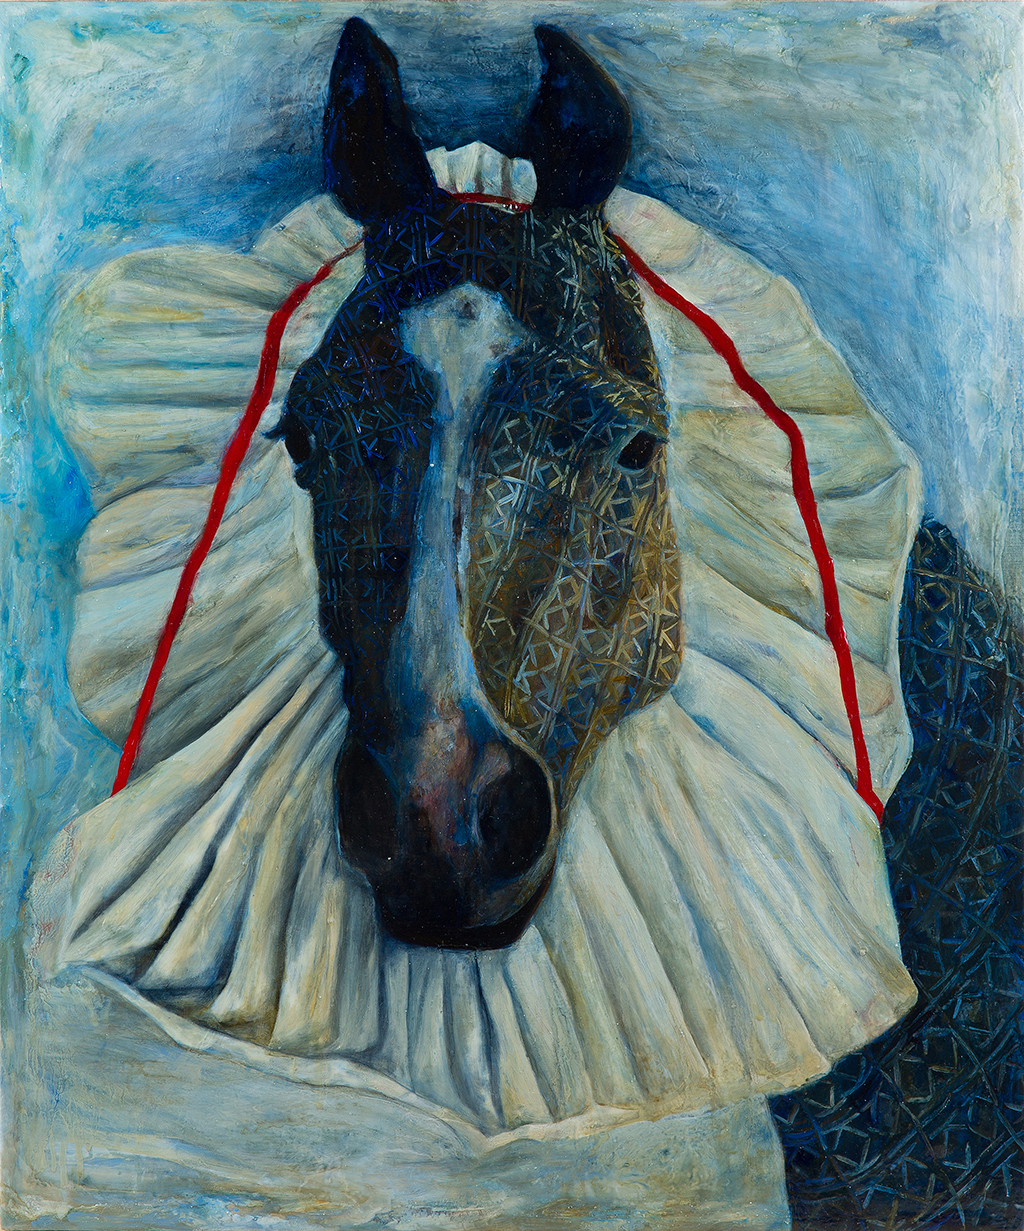 Logo Creature : Pony with Pleated Headdress, 2015 Oil on Linen 23 x 19 inches